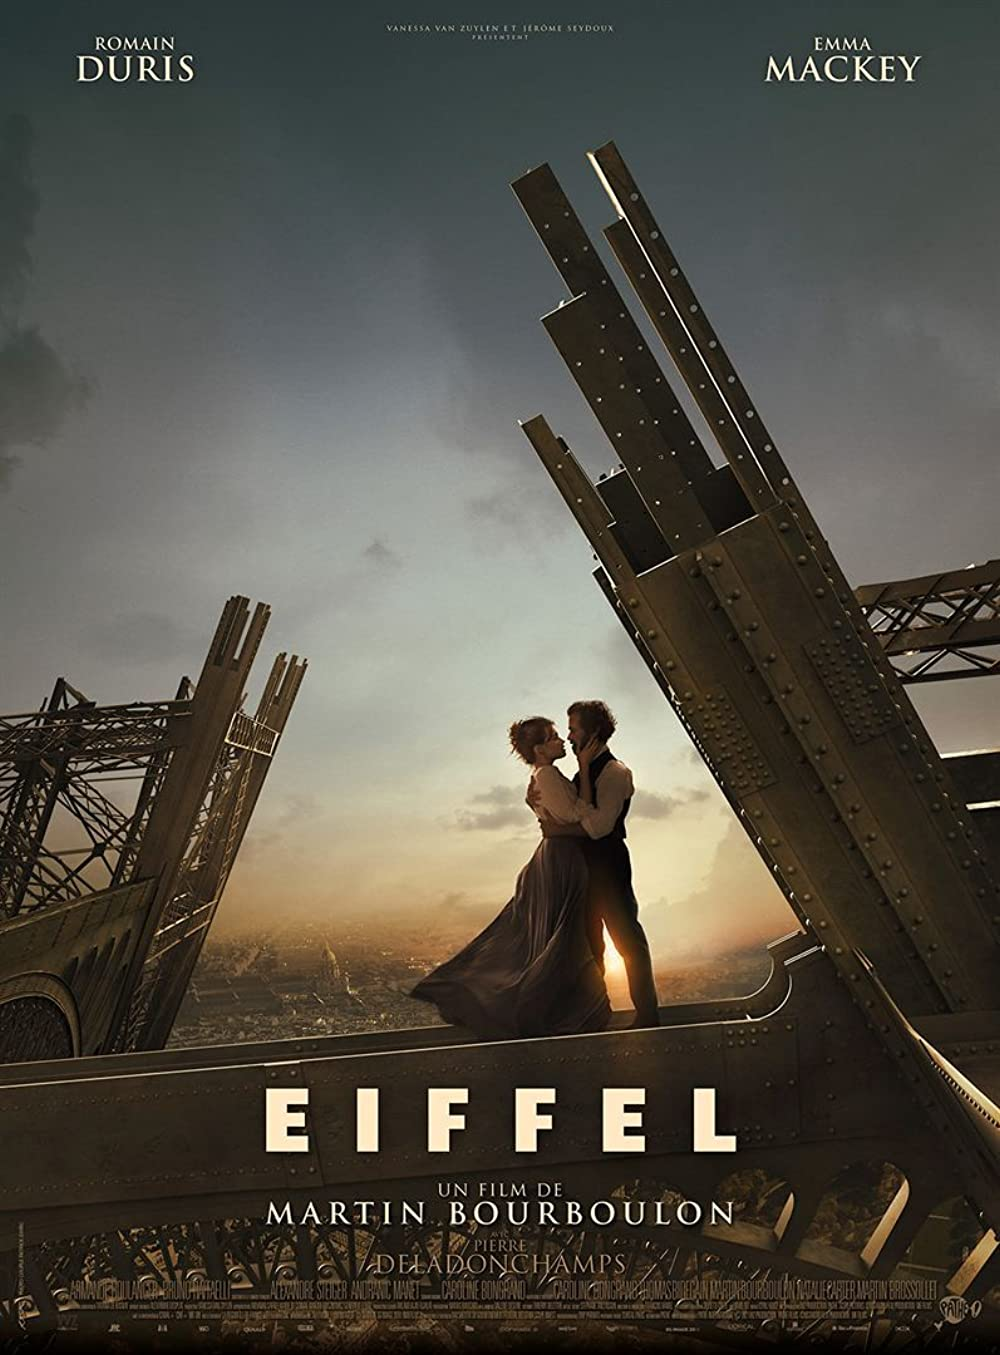 Download Eiffel (2021) Hindi (Voice Over) Dubbed+ French [Dual Audio] CAMRip 720p [1XBET] Full Movie Online On 1xcinema.com & KatMovieHD.sk